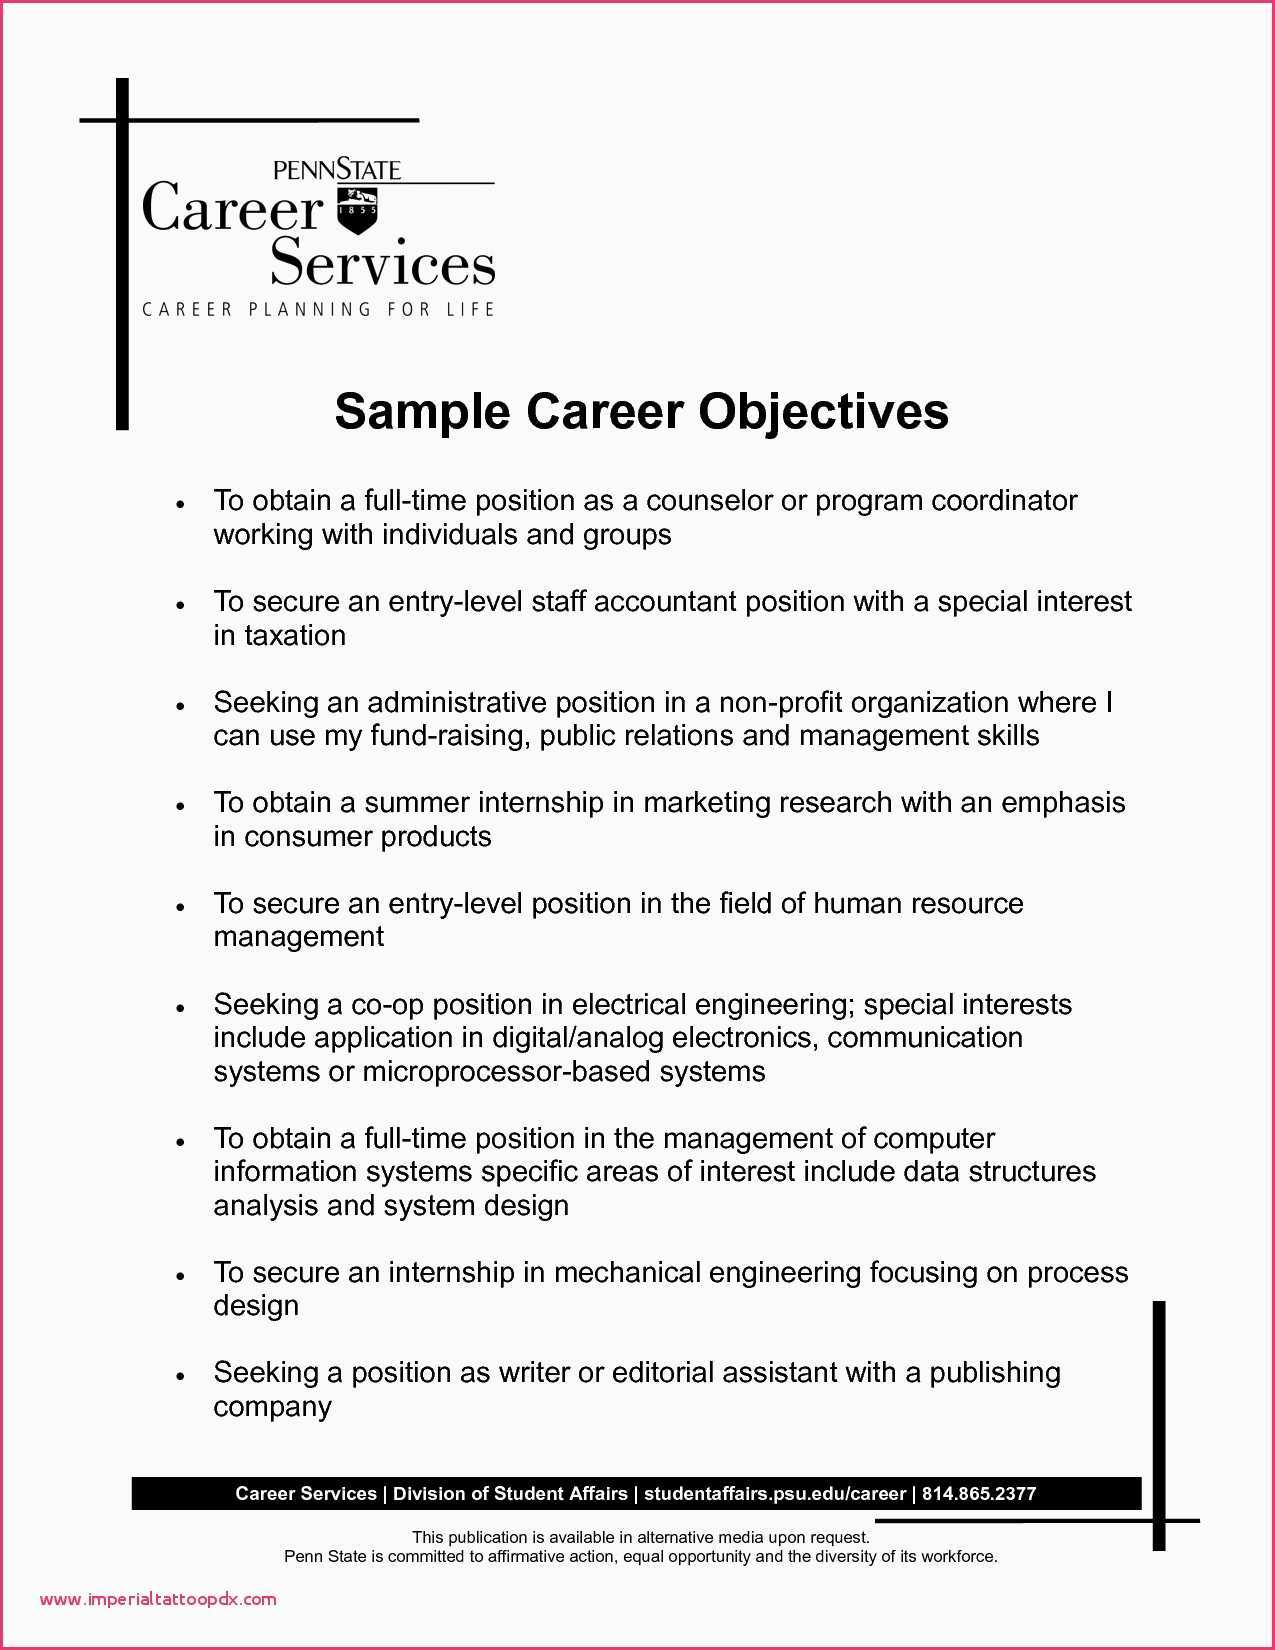 Professional Resume Sample - Sample Career Objective Customer Service Resume Example Resume